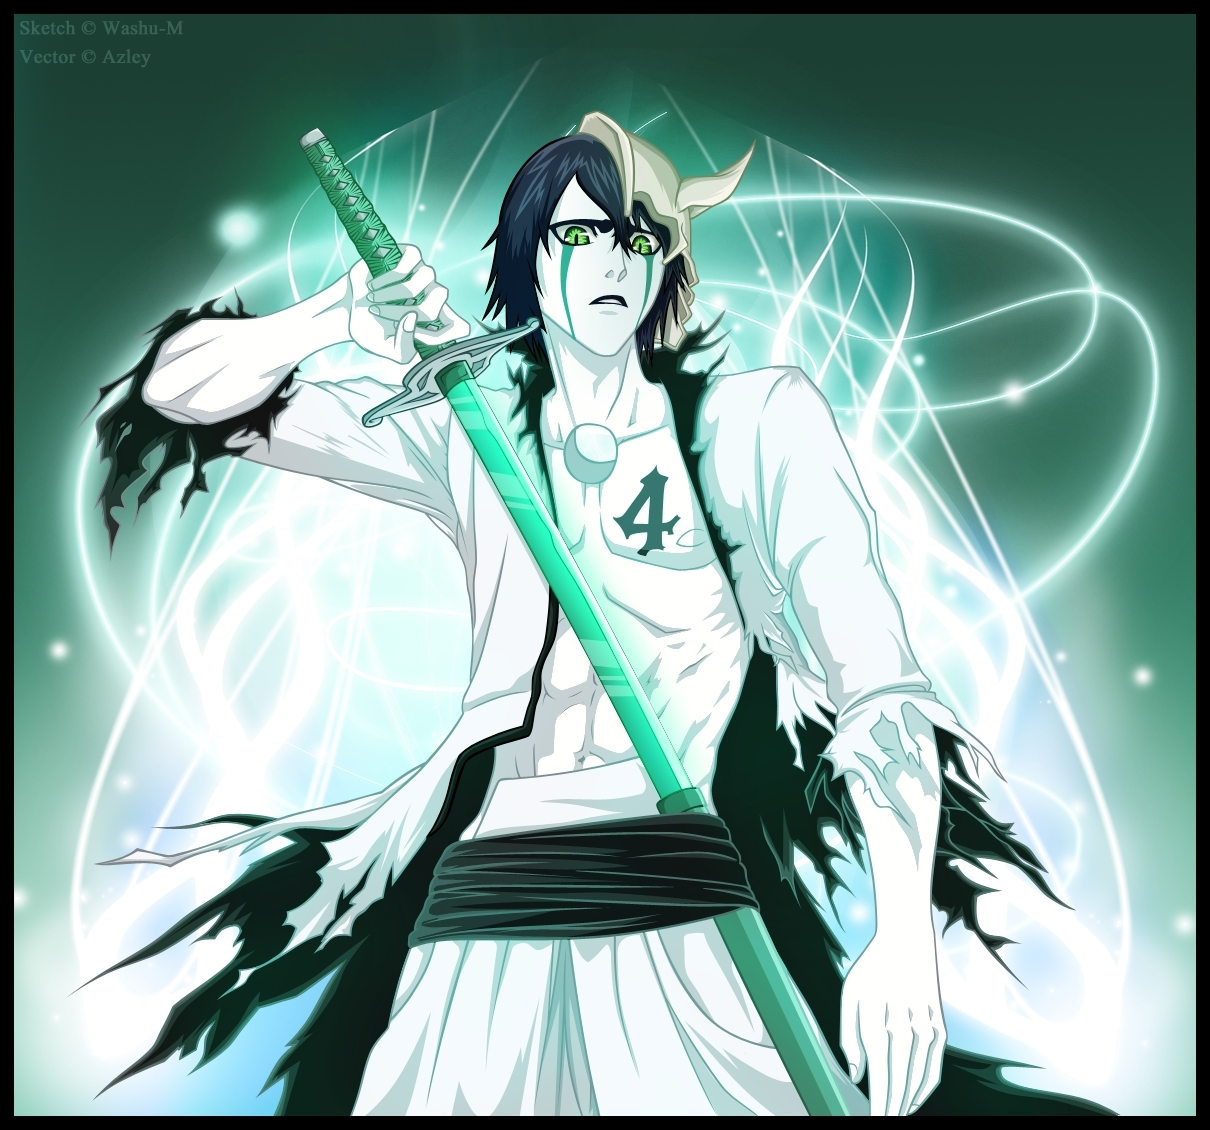 who is the hotest character in bleach? - E Bleach Anime